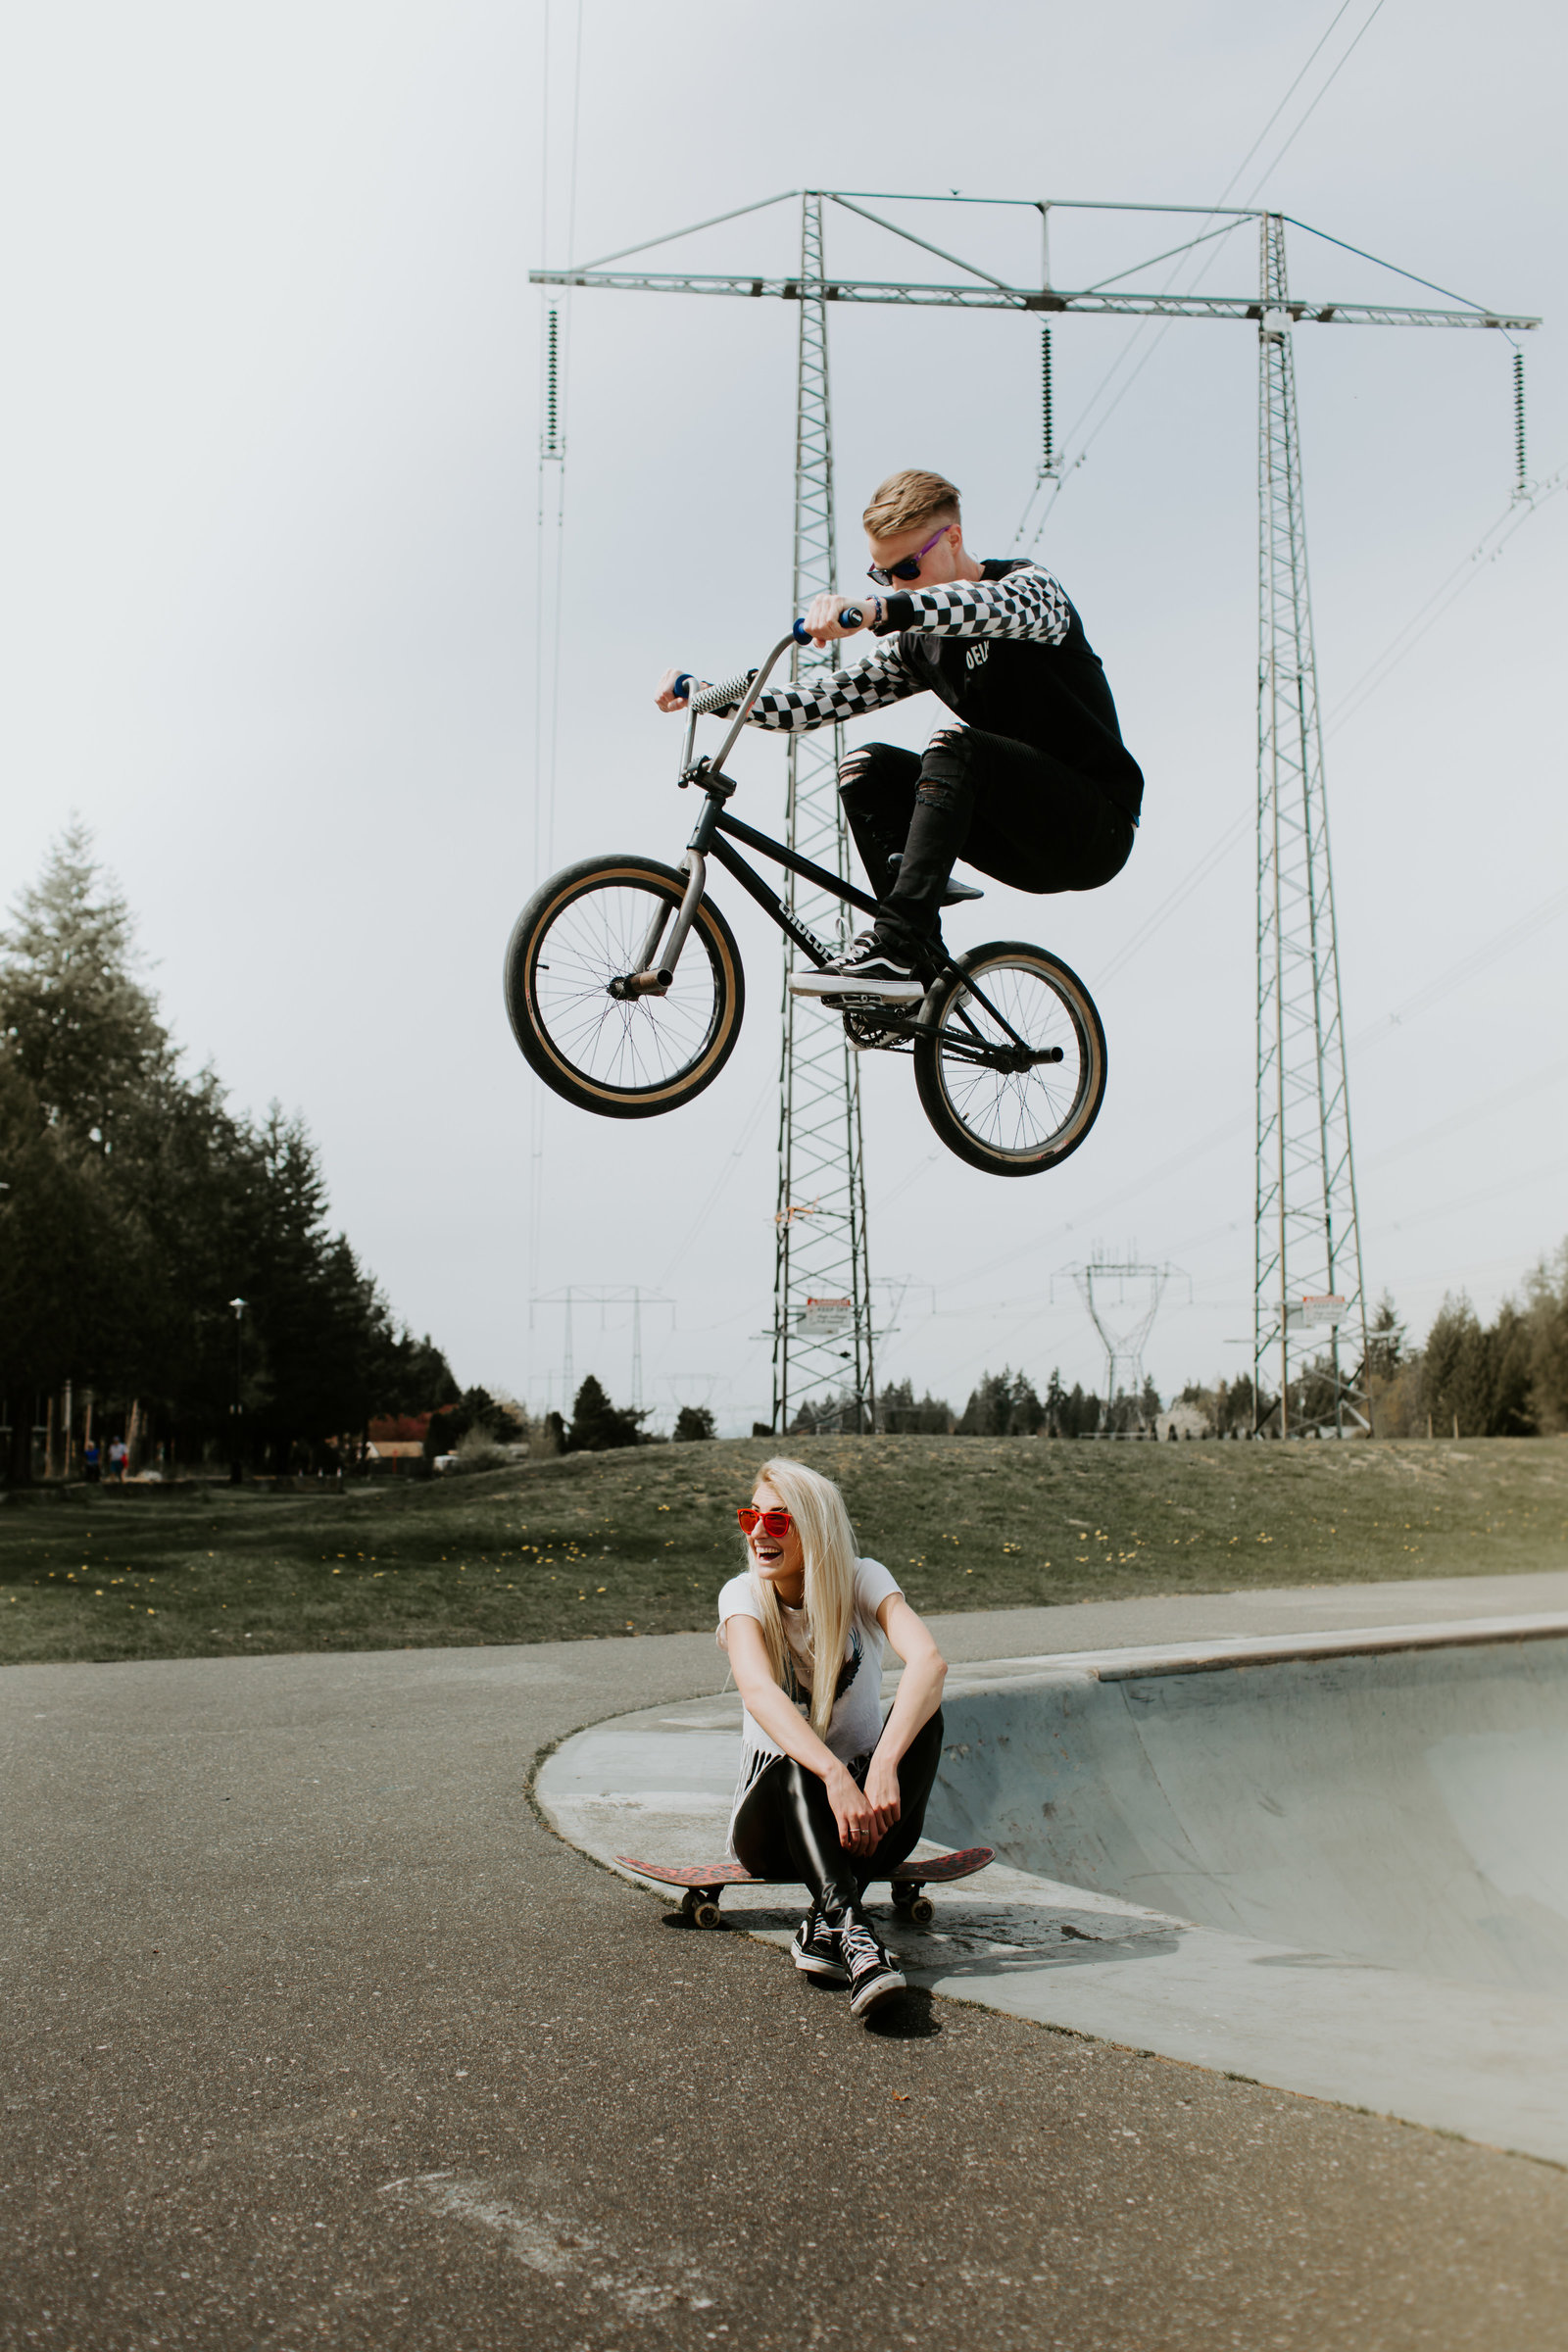 SKATE-PARK-ENGAGEMENT-MEGHAN-HEMSTRA-PHOTOGRAPHY-7